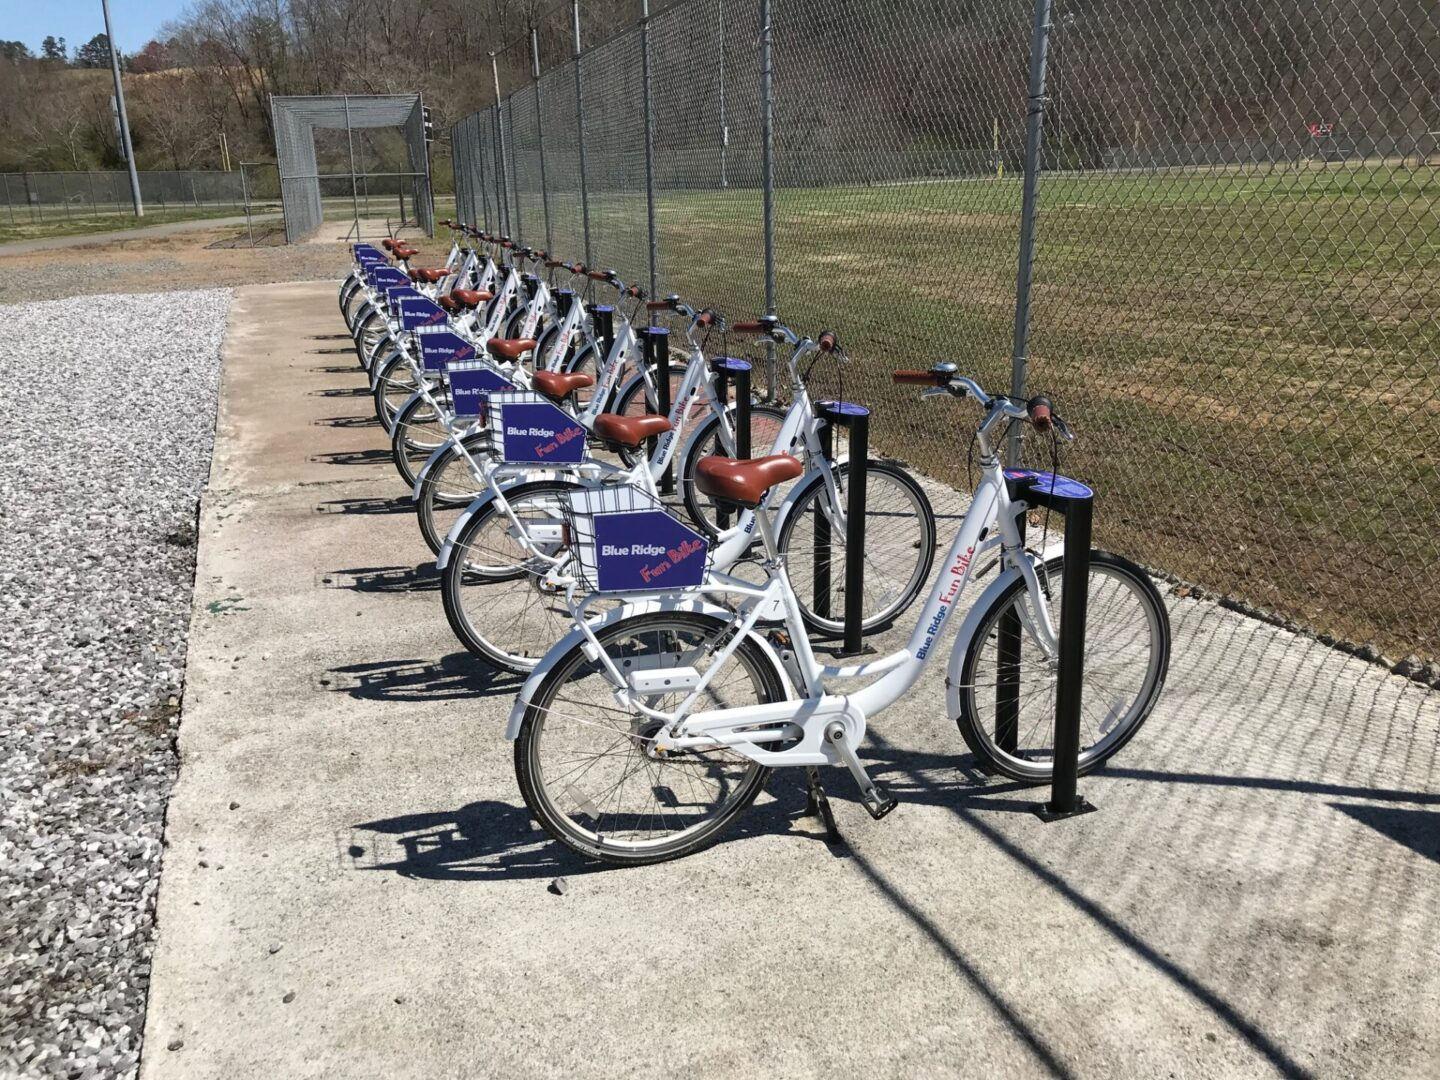 A line of bikes in front of a wide yard